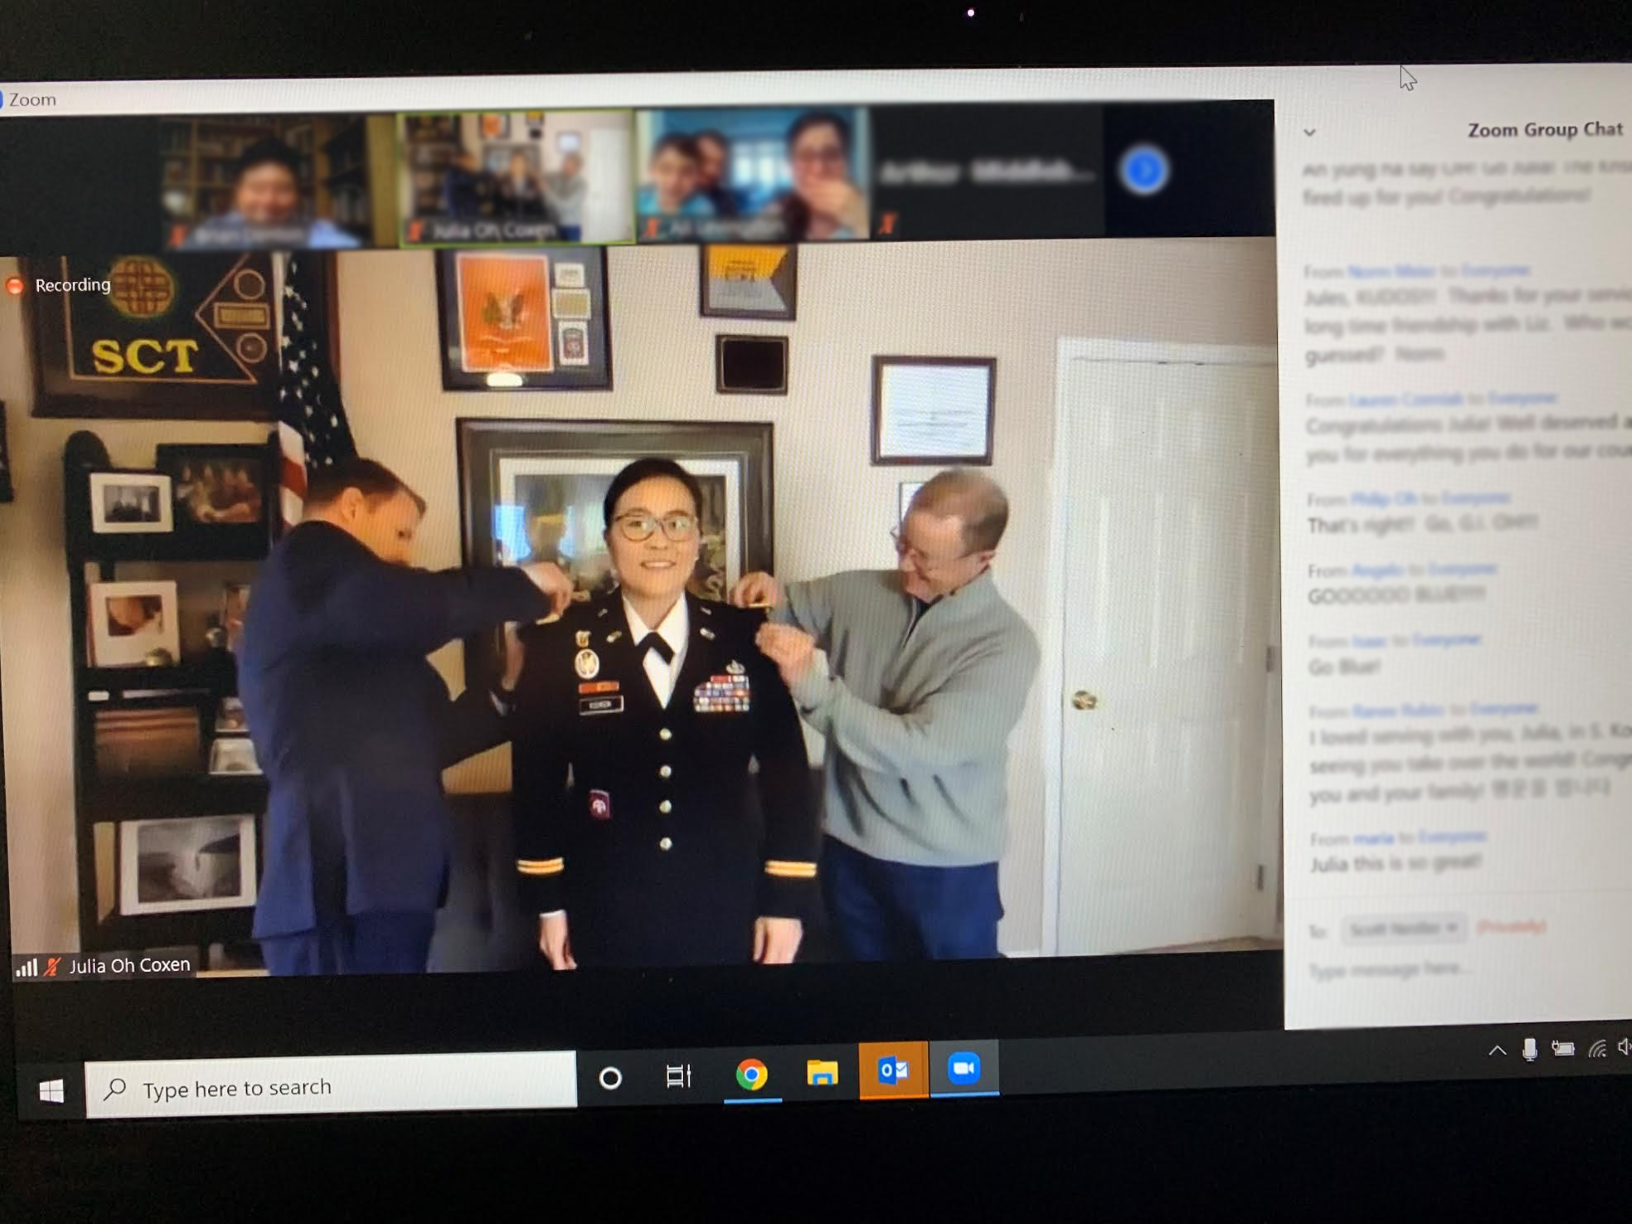 Photo of Julia Coxen receiving having her new rank insignia pinned to her uniform within a virtual chat setting